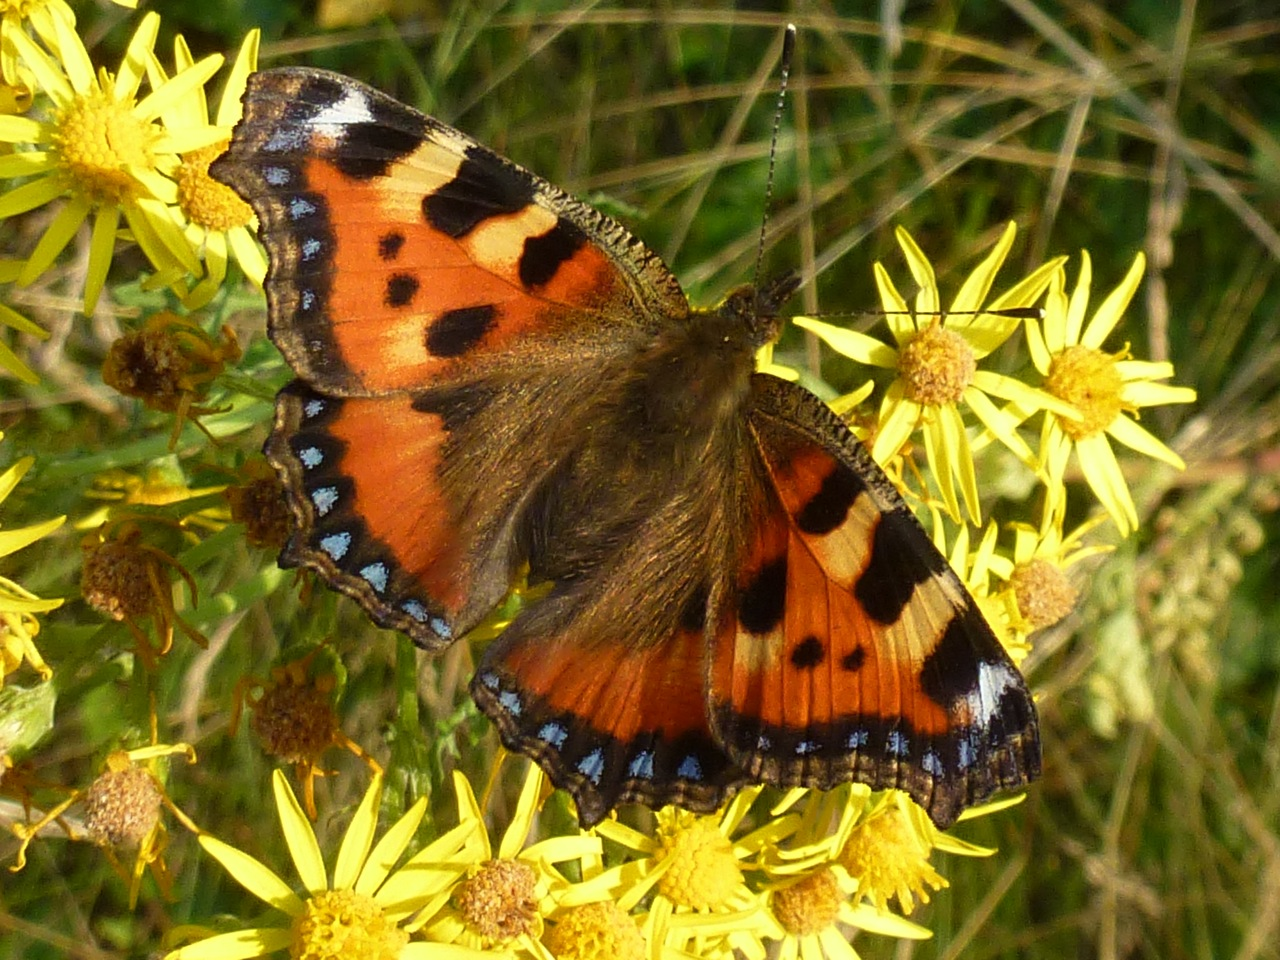 Orange, black and blue butterfly resting on bright yellow flowers